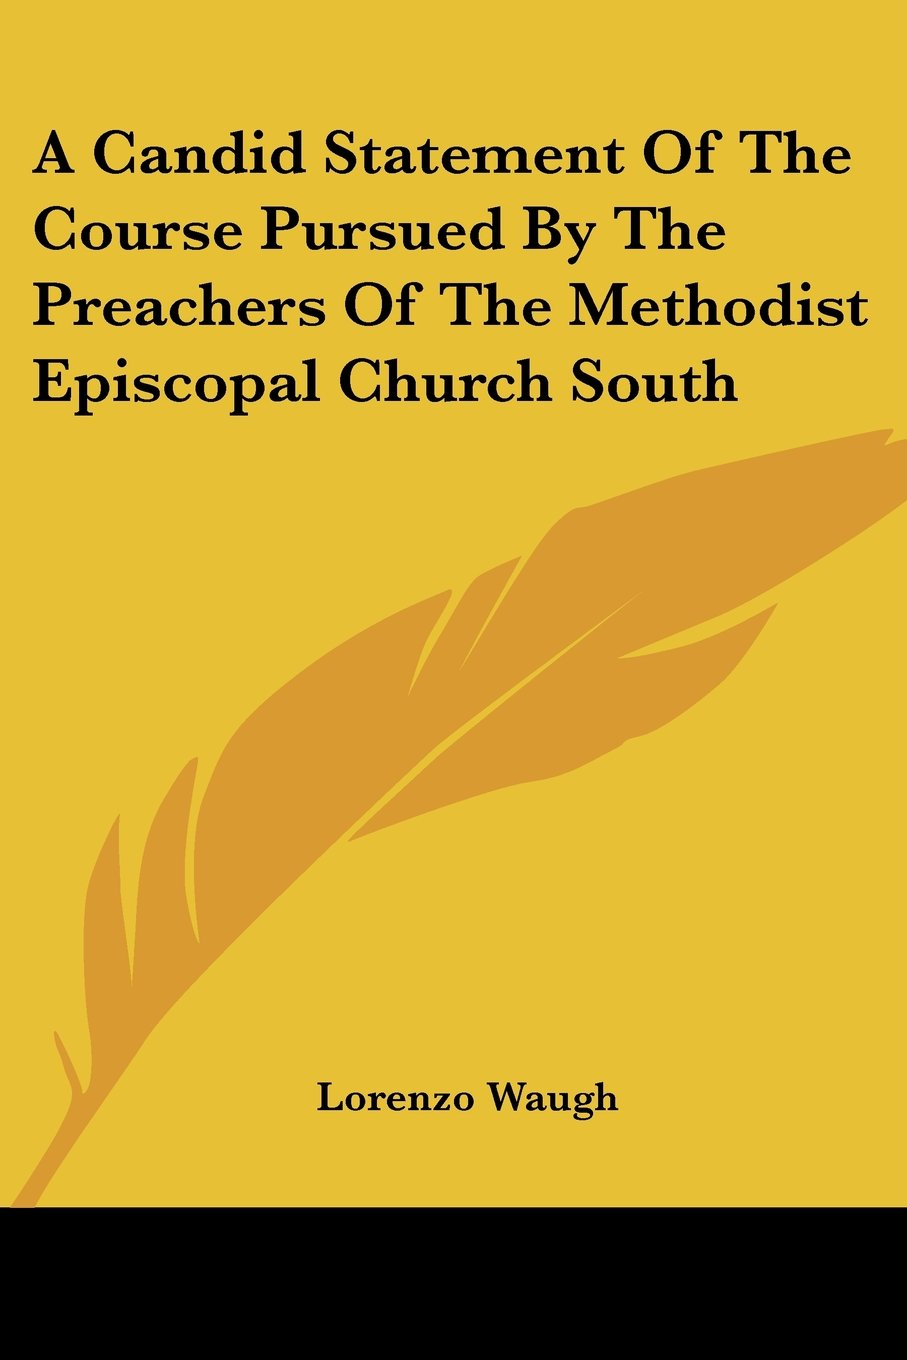 A Candid Statement Of The Course Pursued By The Preachers Of The Methodist Episcopal Church South ebook